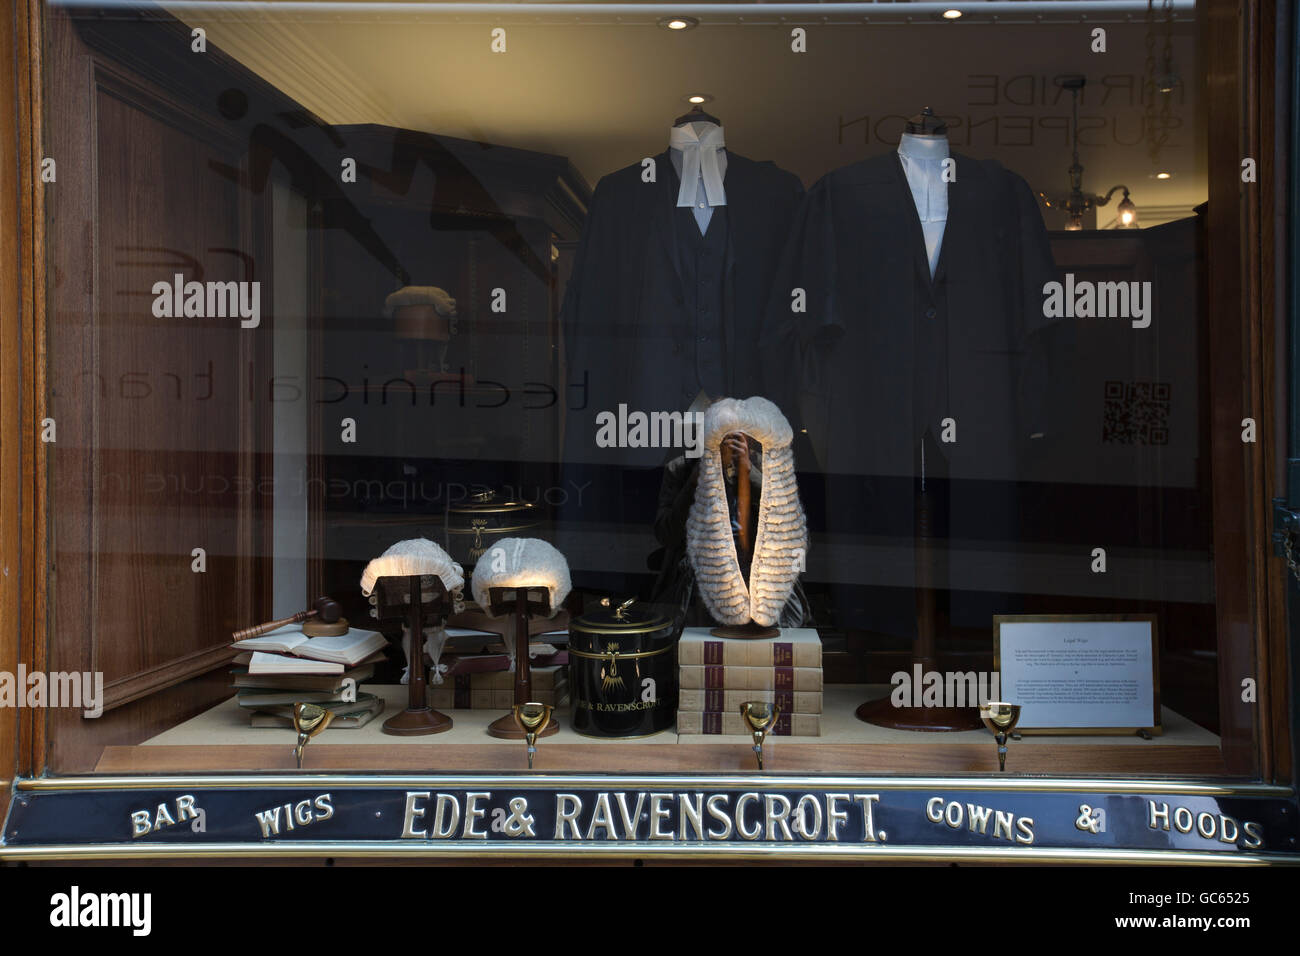 Ede & Ravenscroft, clothes tailors and robe makers for the legal profession, Chancery Lane, London, England, - Stock Image